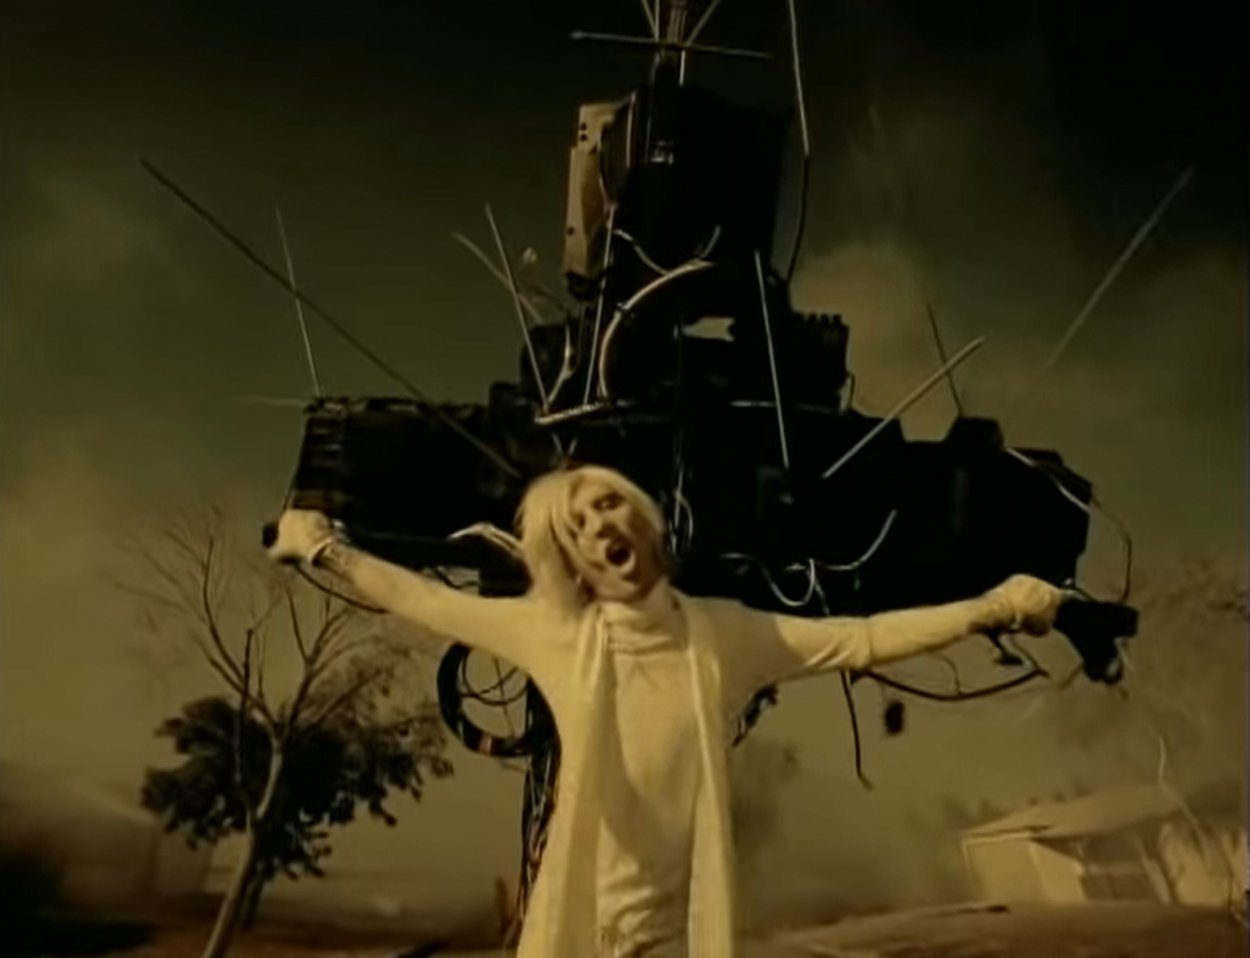 """Marilyn Manson hanging from a crucifix made of TVs in the """"I Don't Like the Drugs (But the Drugs Like Me)"""" music video"""